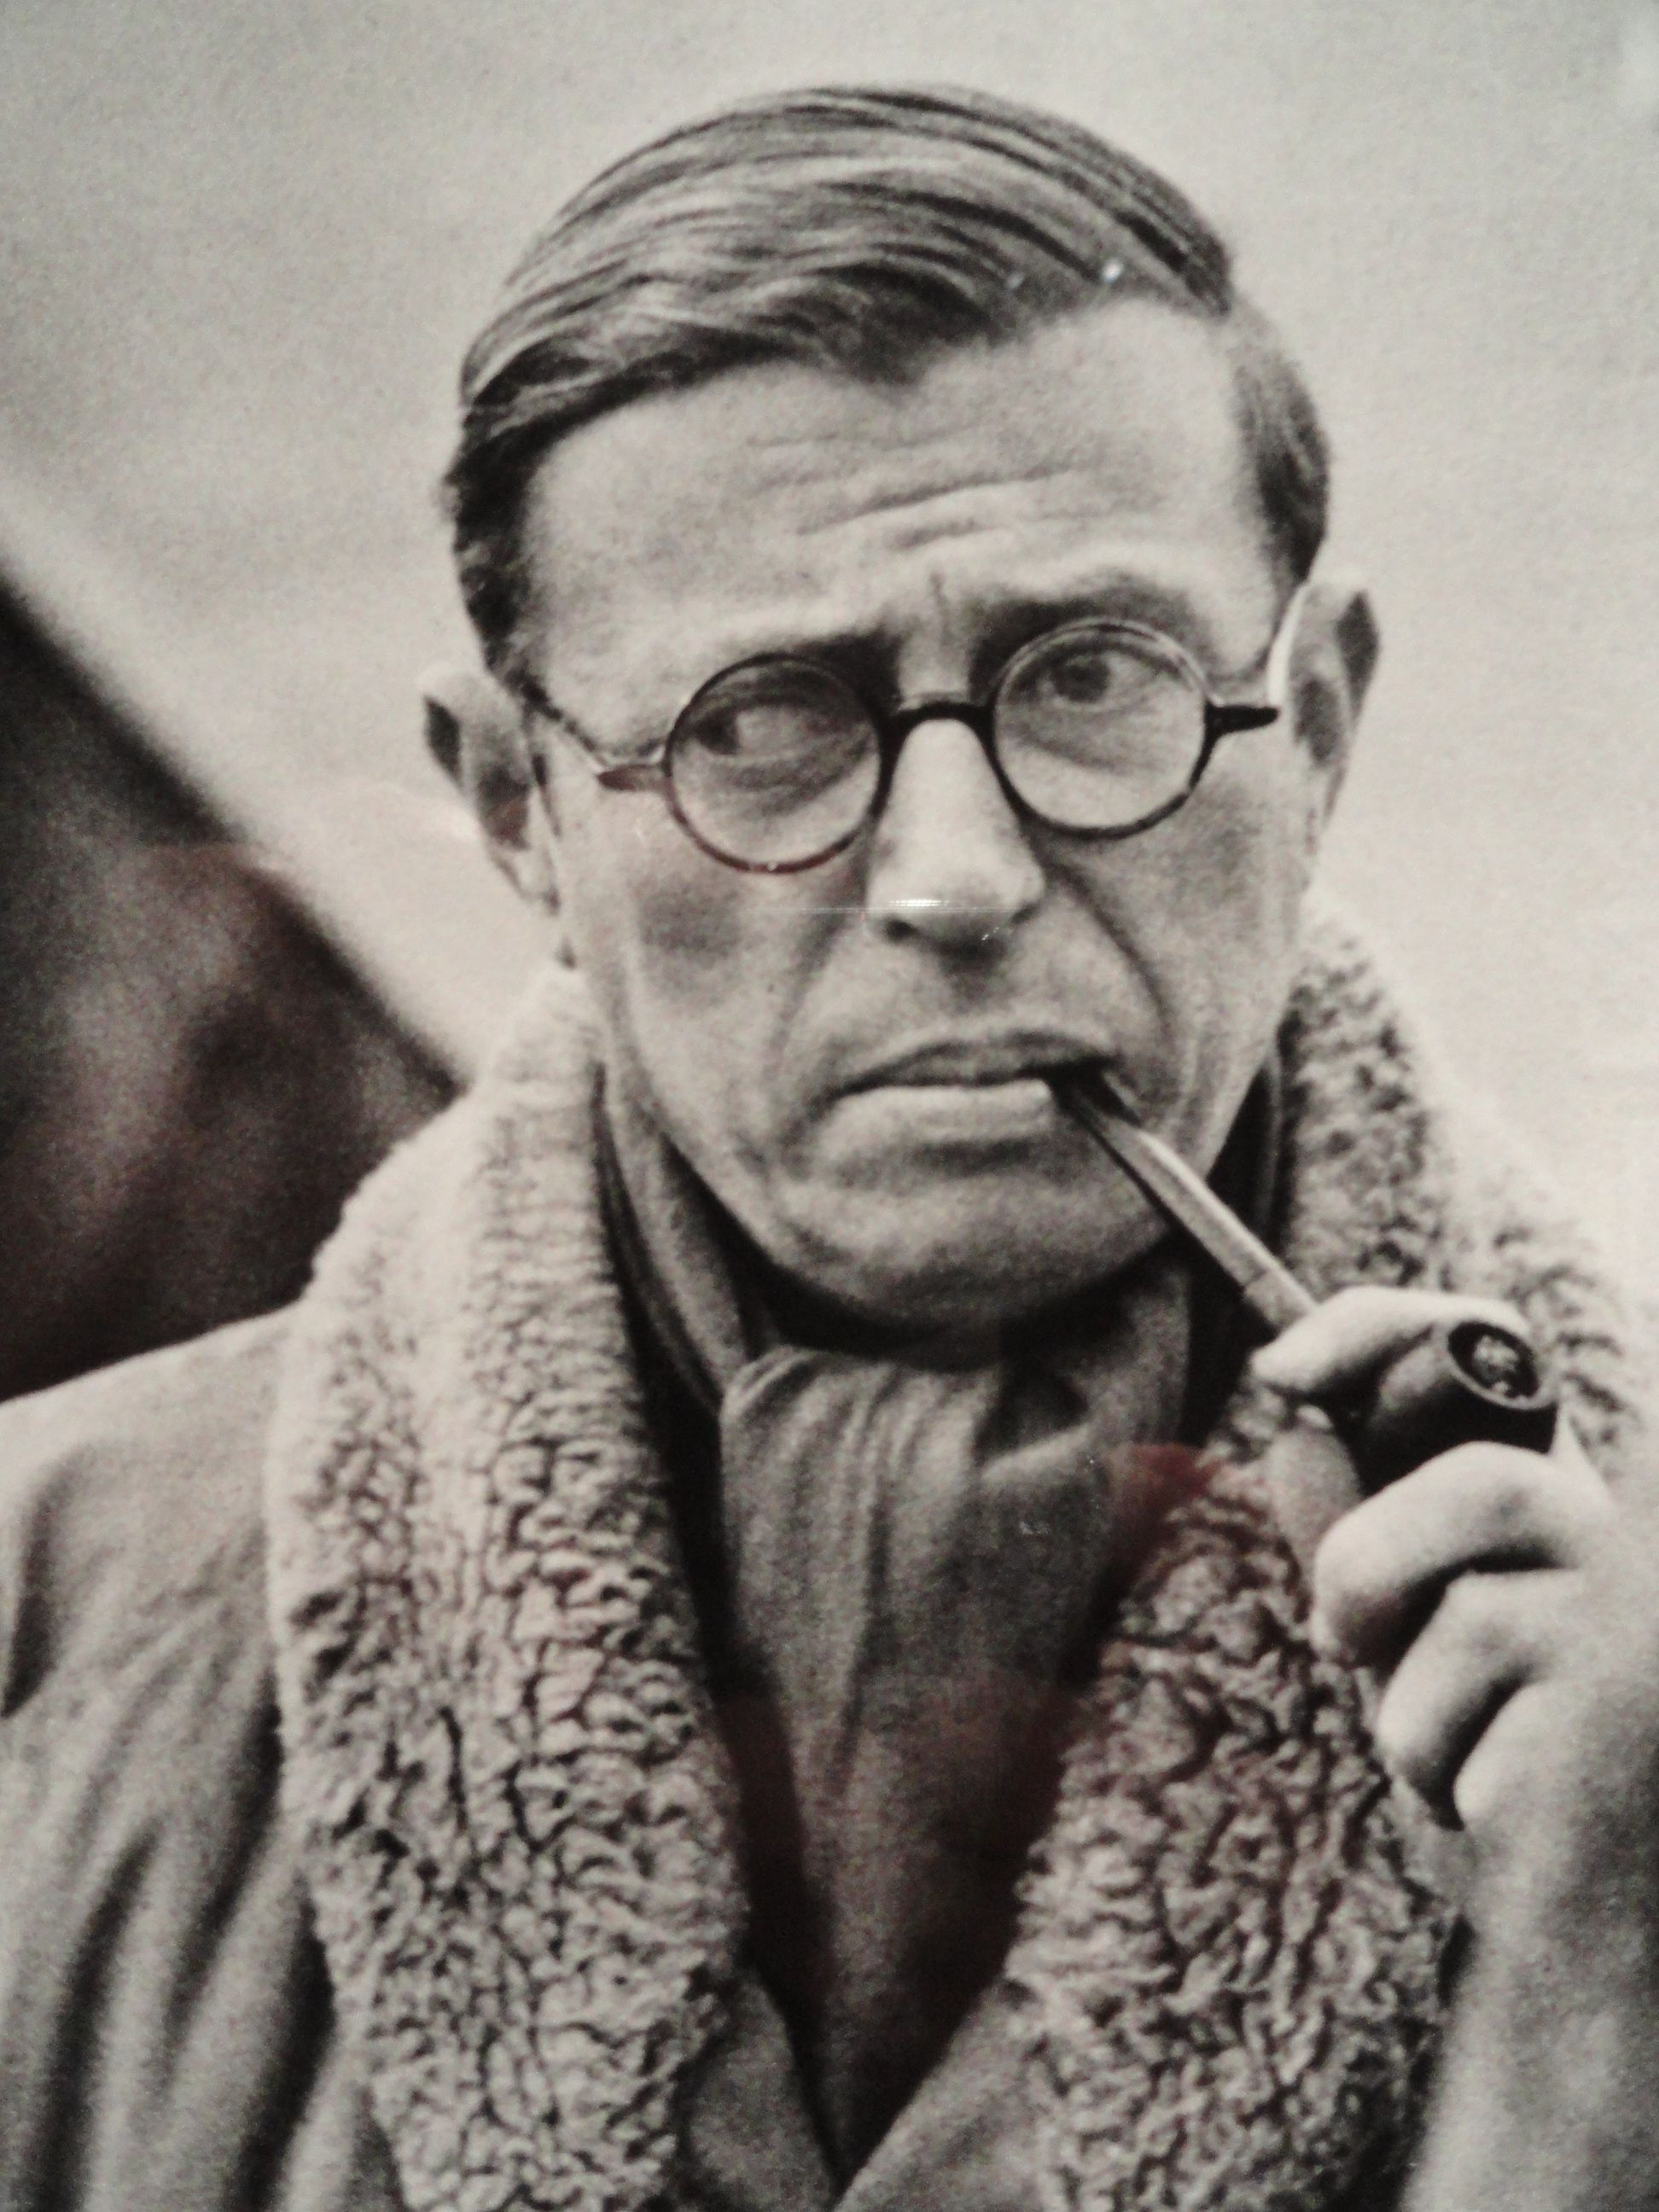 sartre and camus relationship questions